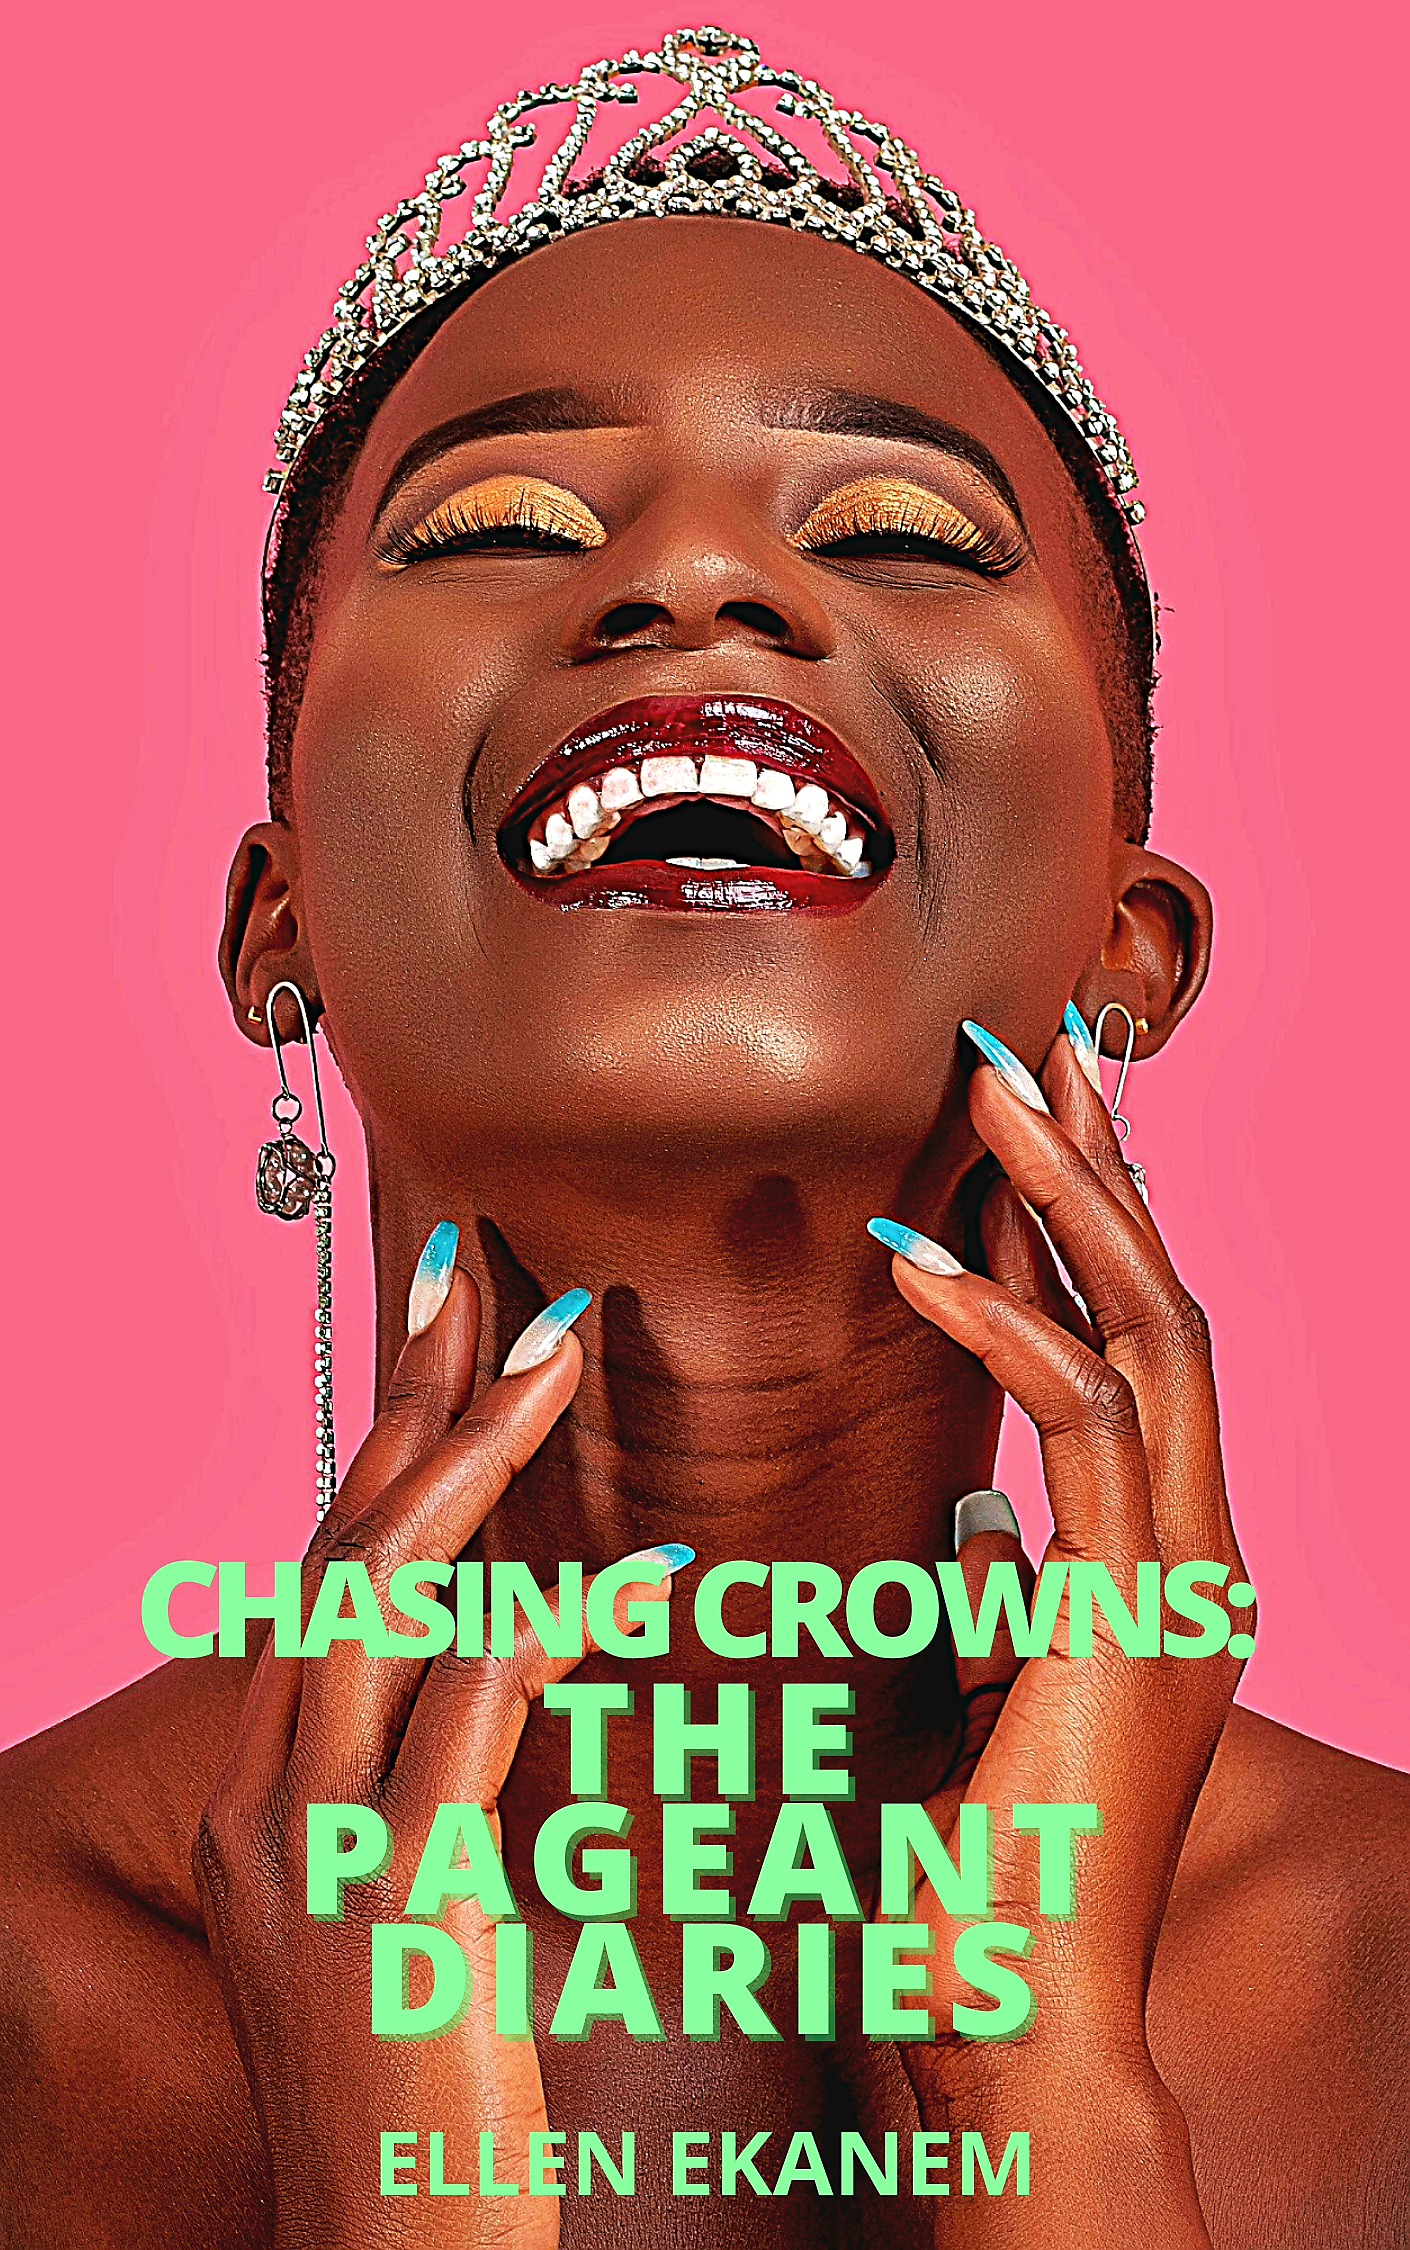 Chasing Crowns: The Pageant Diaries